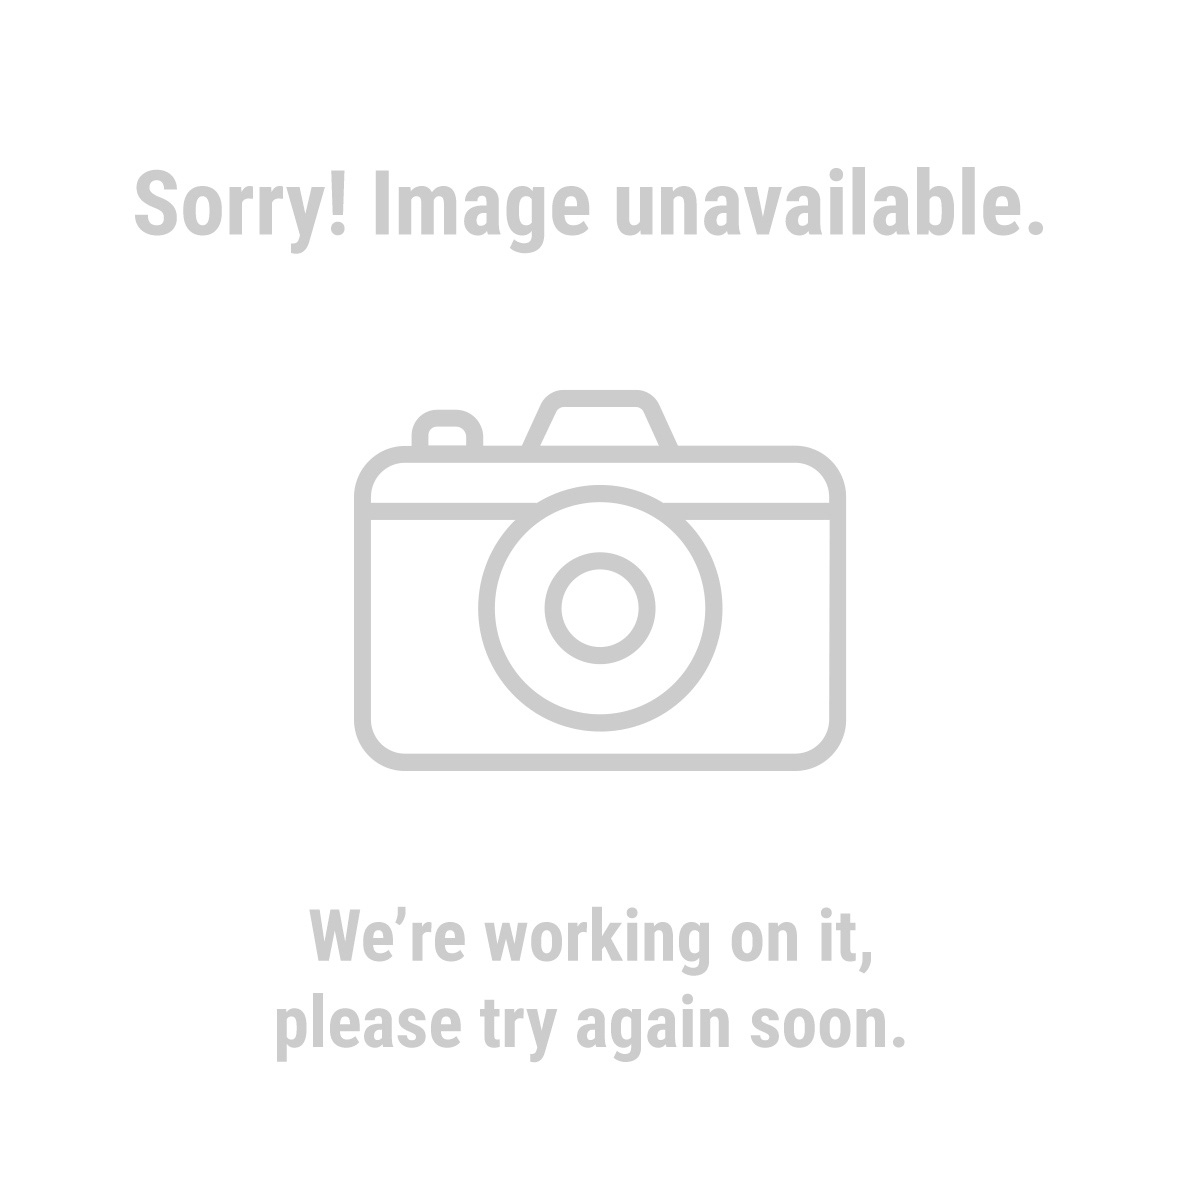 "Drill Master 68239 18 Volt Cordless 3/8"" Drill/Driver with Keyless Chuck"